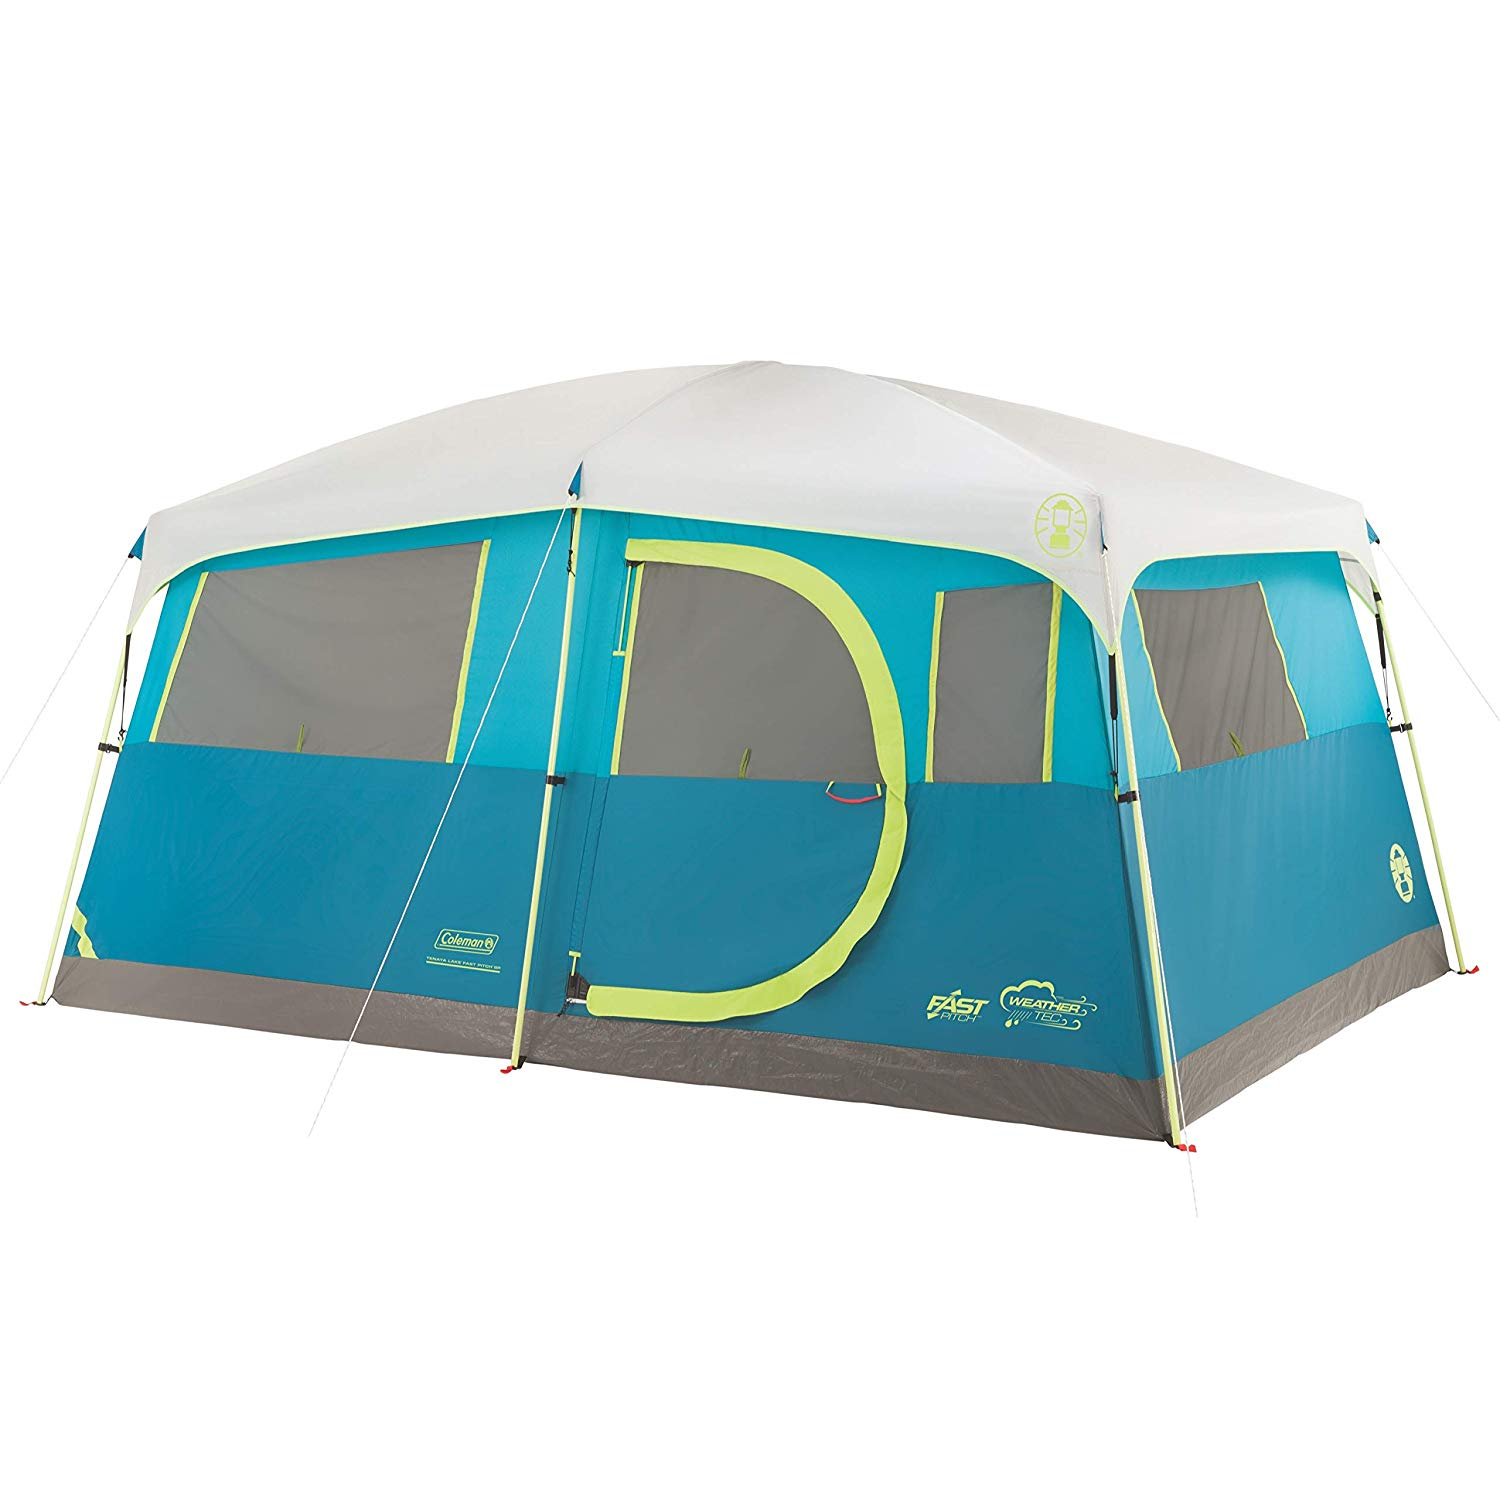 Coleman 8-Person Camping Tent with Built-in Closet